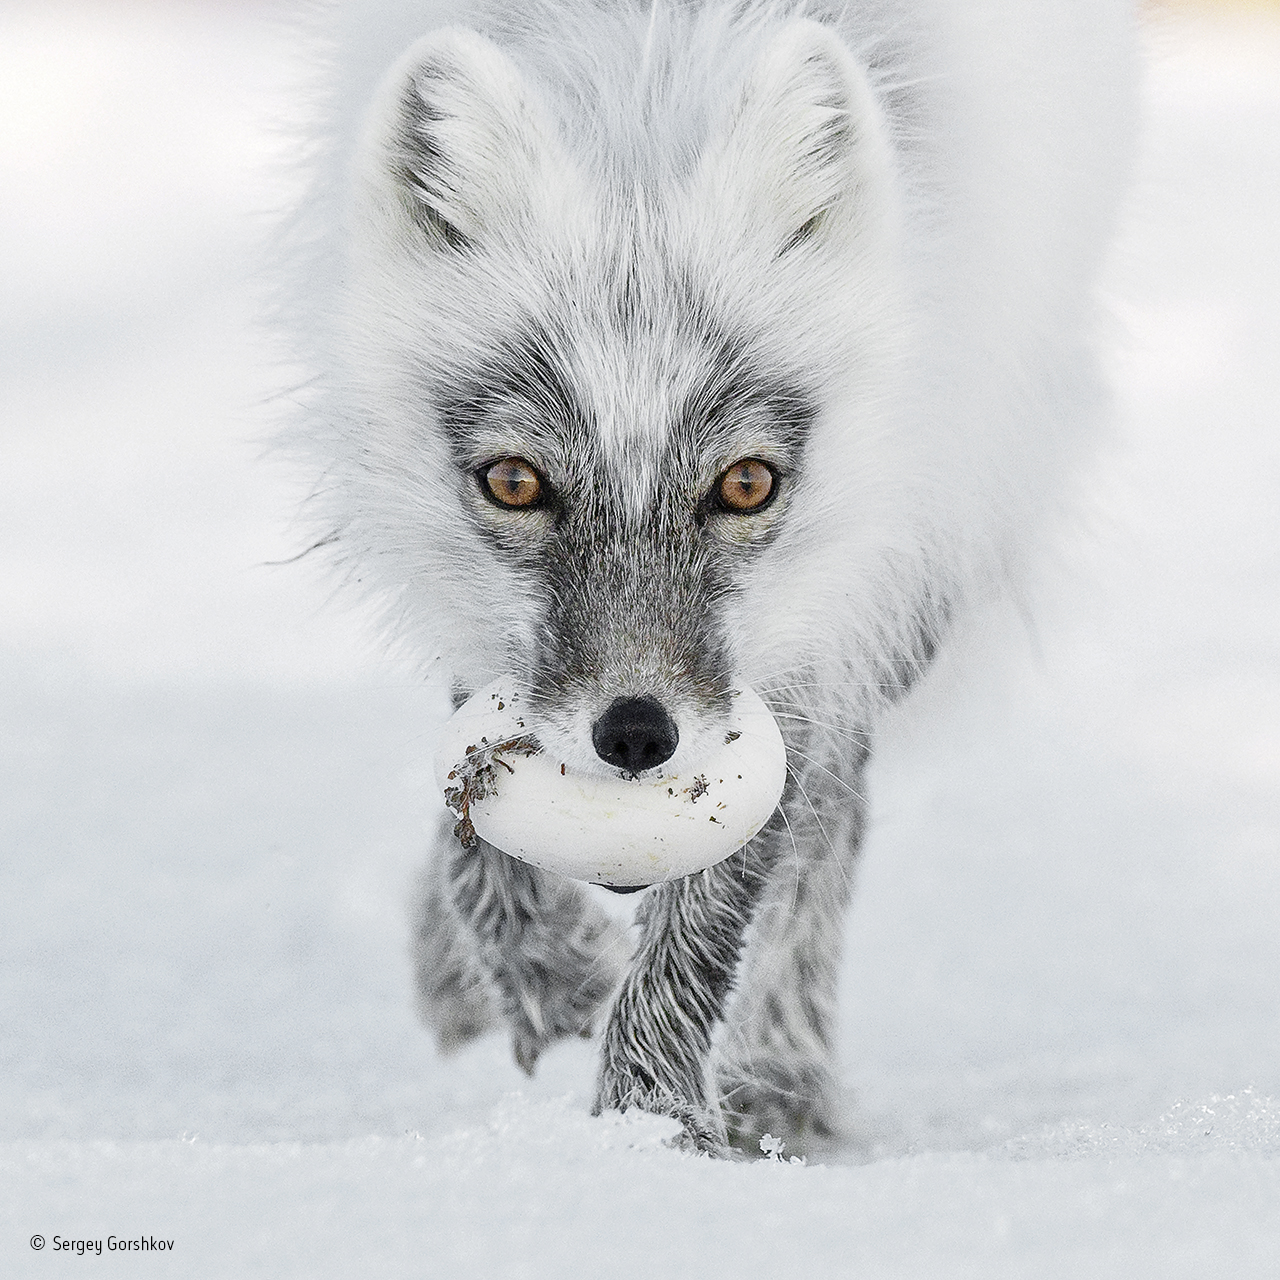 Russia, Wrangel Island, The Arctic fox with an egg (Sergey Gorshkov/PA)